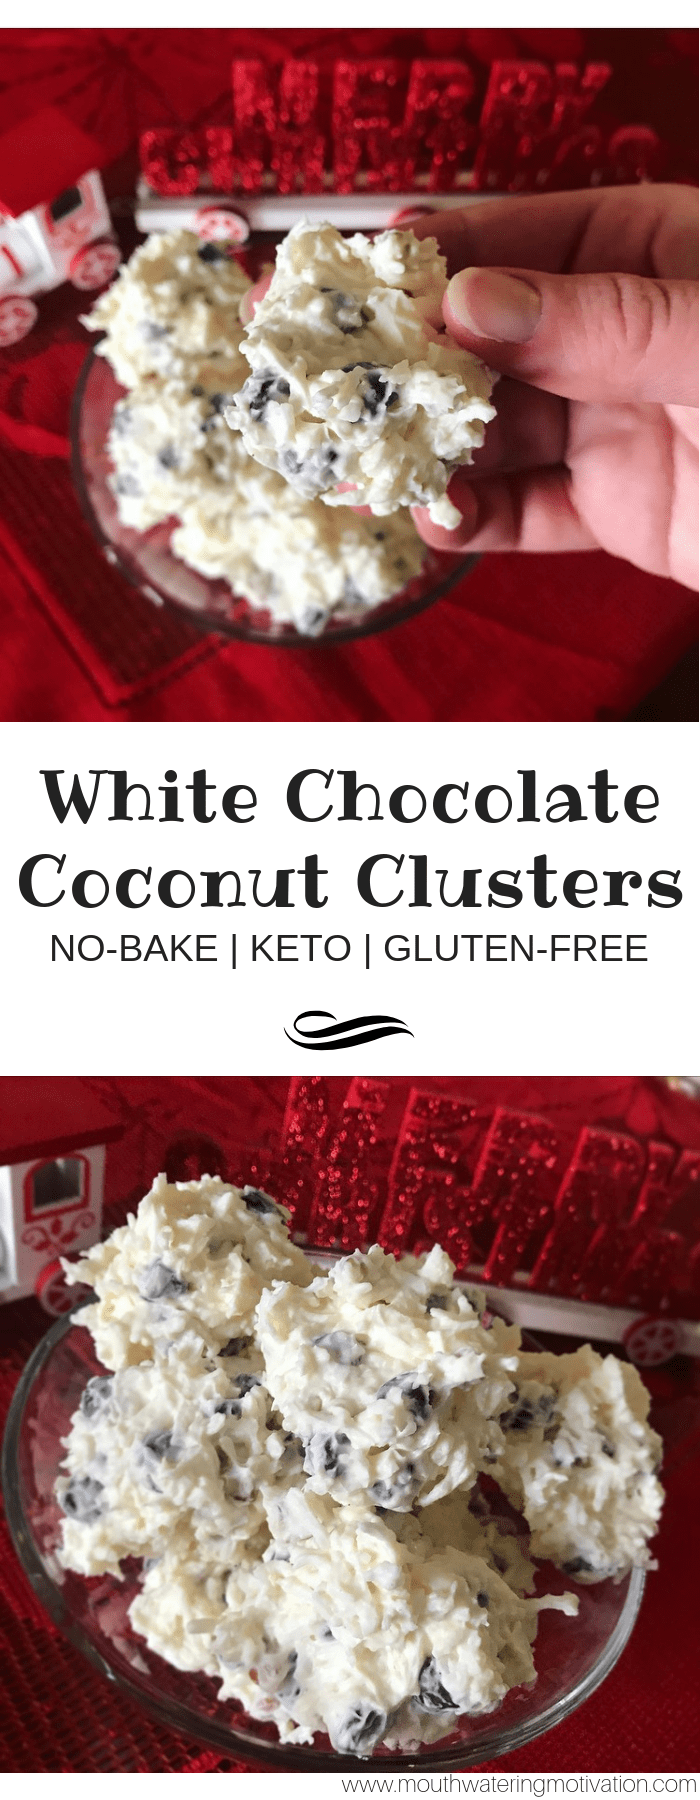 Keto White Chocolate Coconut Clusters.png